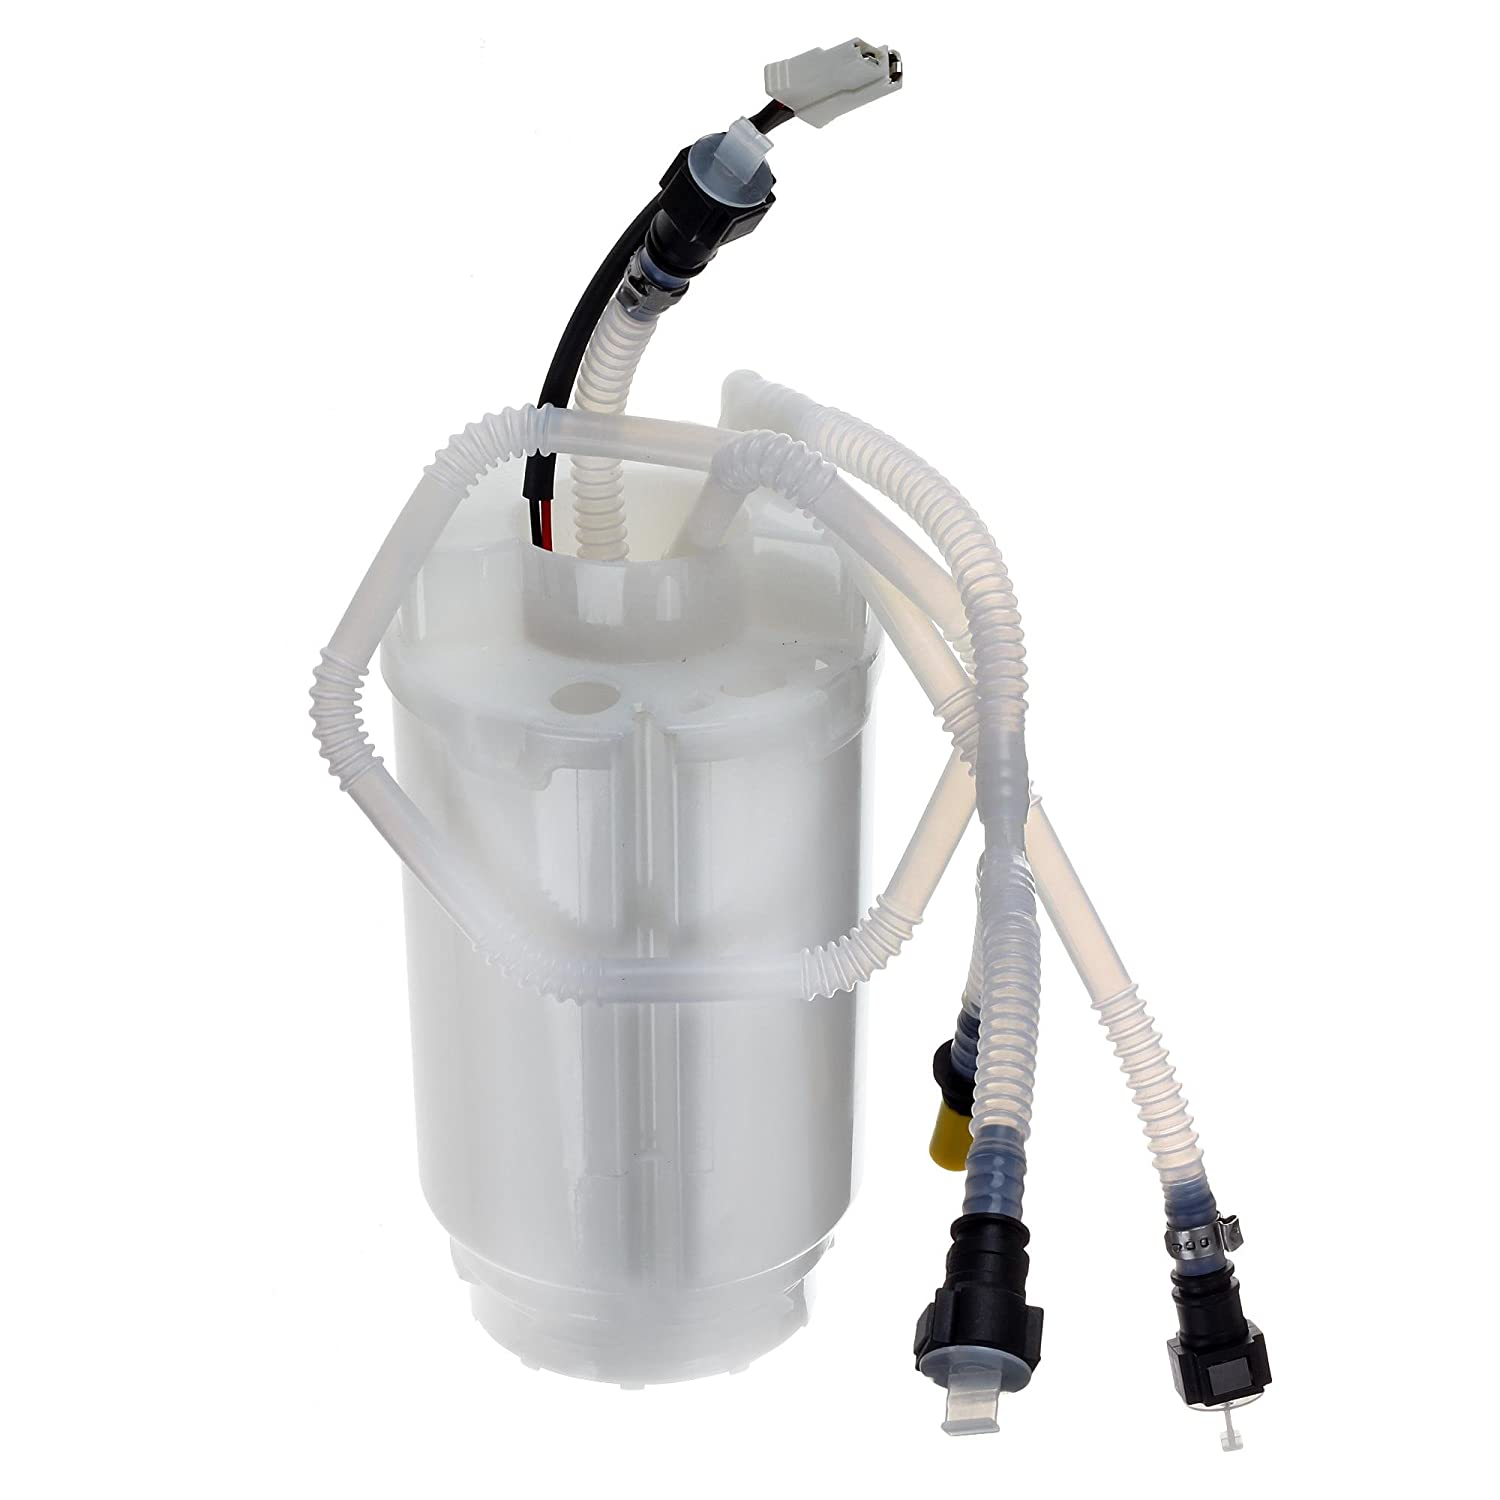 Powerco Electric Fuel Pump Module For 2007 Volkswagen Chysler Pt Cruiser Filter Touareg 36l Left Side E8568m Automotive